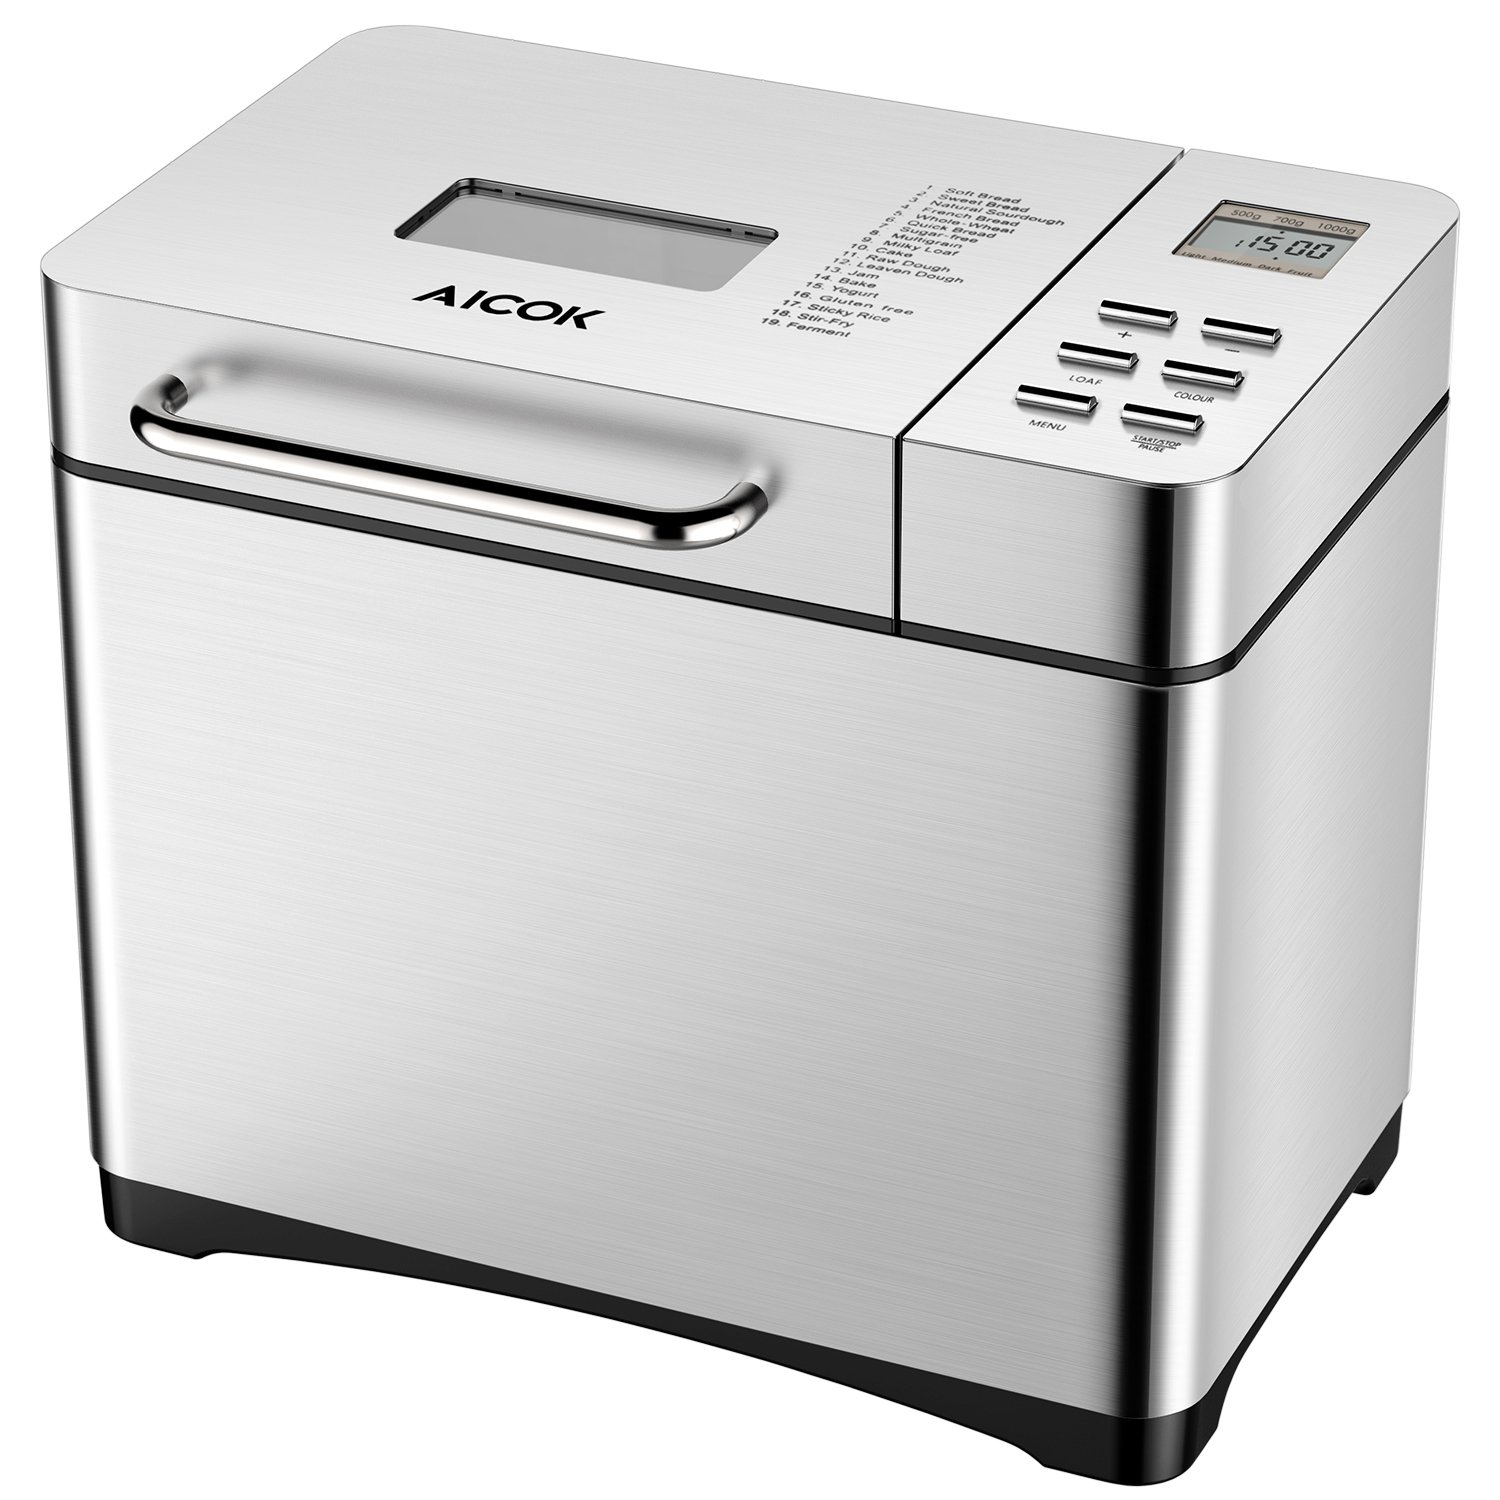 Bread Machine Aicok, Stainless Steel Bread Maker 19 Programs With 15 Hours Delay, 3 Loaf Sizes, 3 Crust Colors, Gluten Free Whole Wheat Breadmaker, Silver